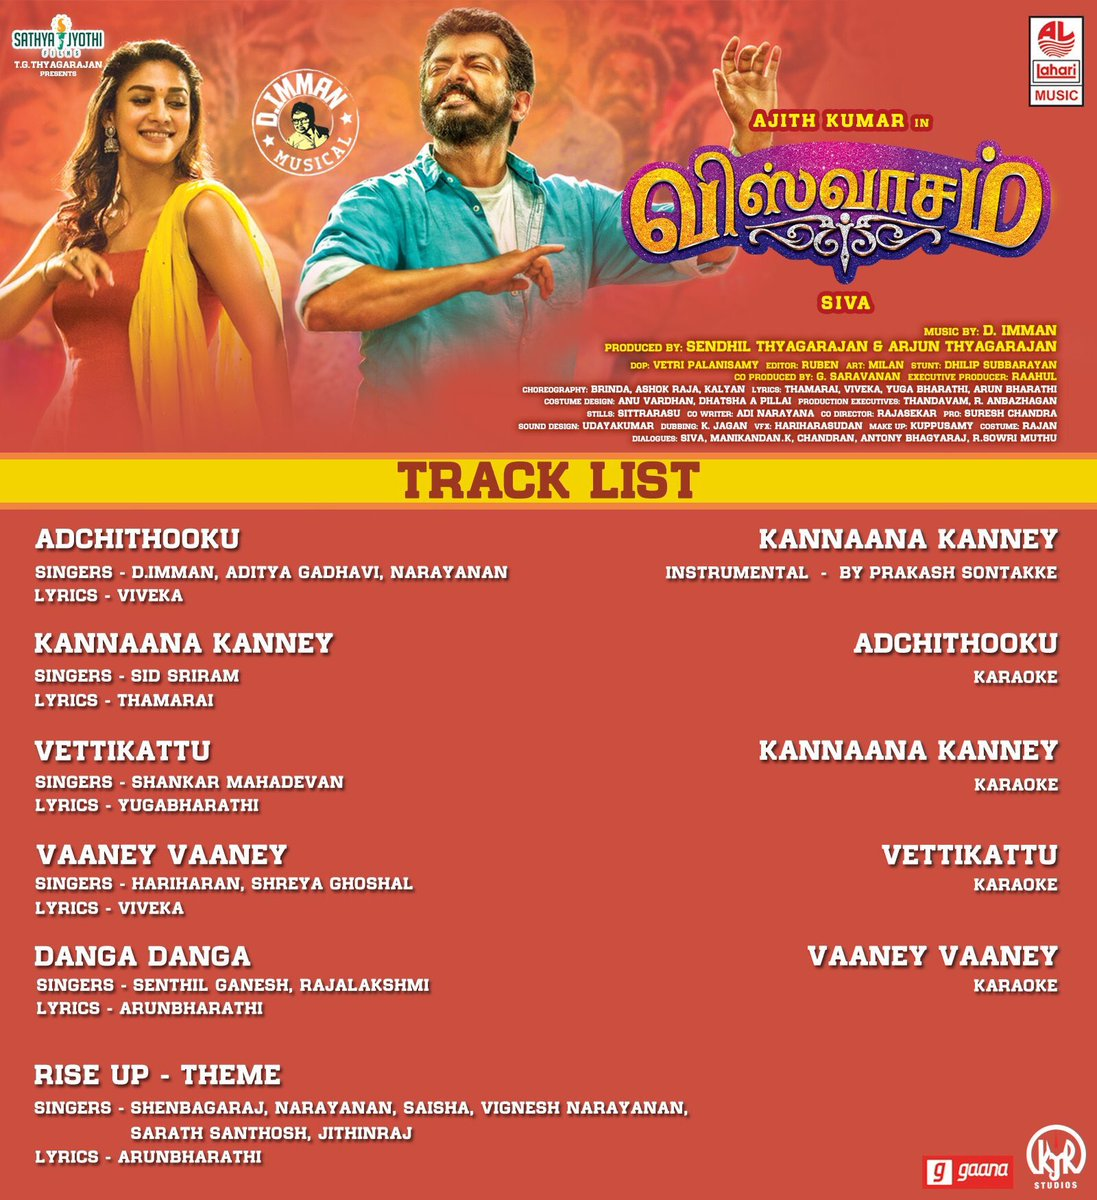 #SONGS Latest News Trends Updates Images - immancomposer